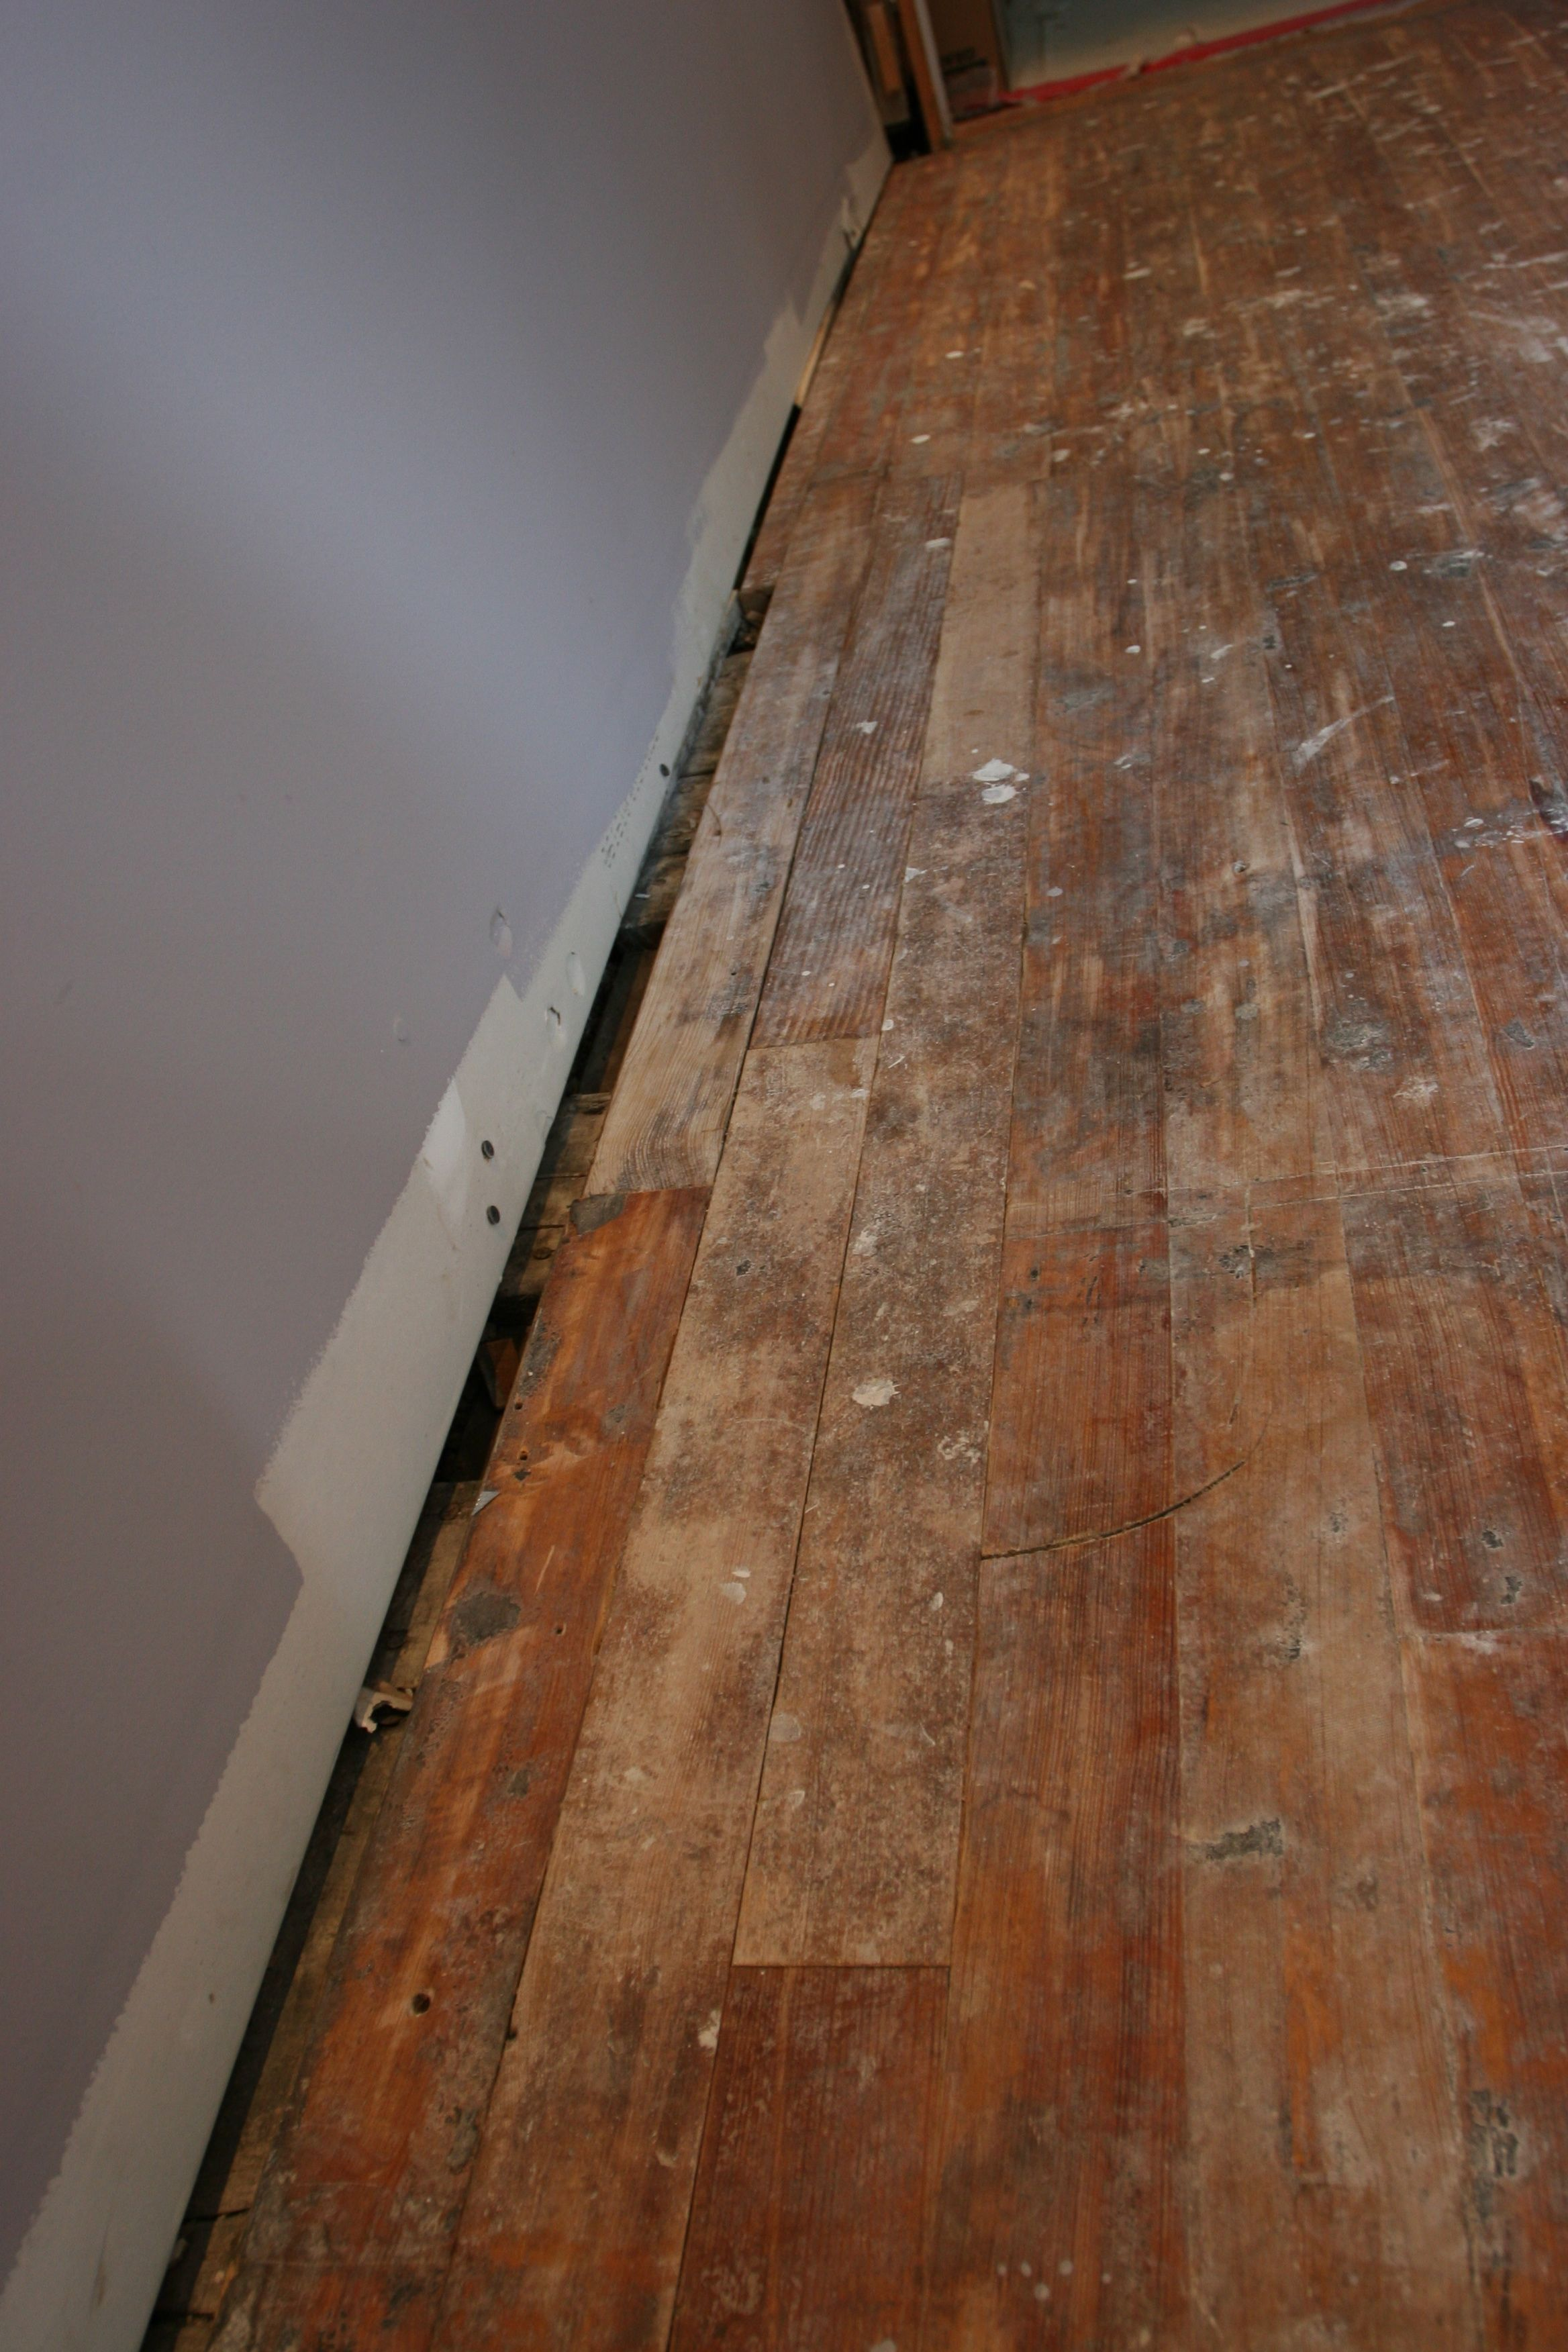 More patches from the old radiator, and to extend the floor a tad.